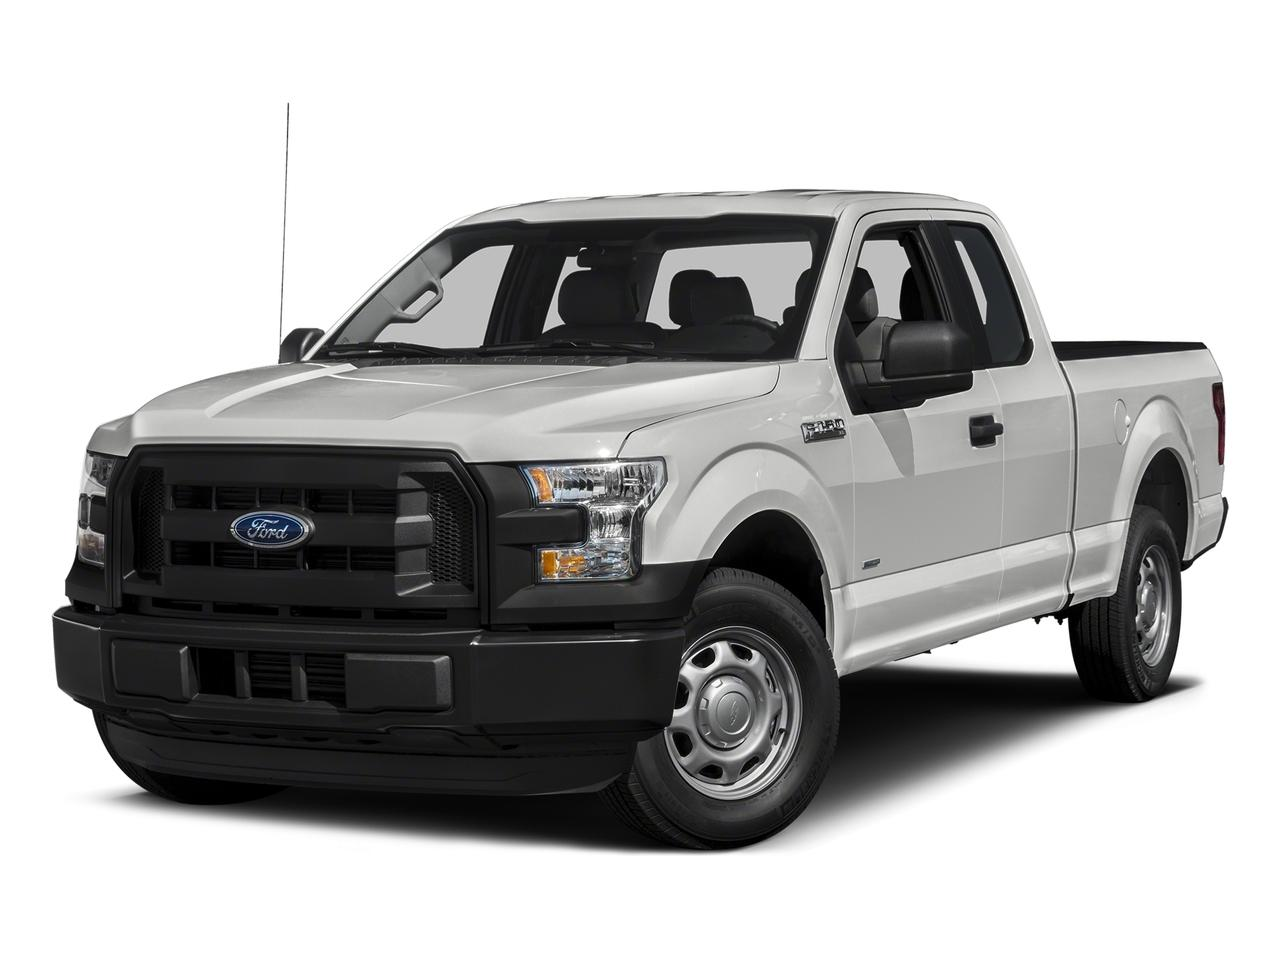 2015 Ford F-150 Vehicle Photo in Boyertown, PA 19512